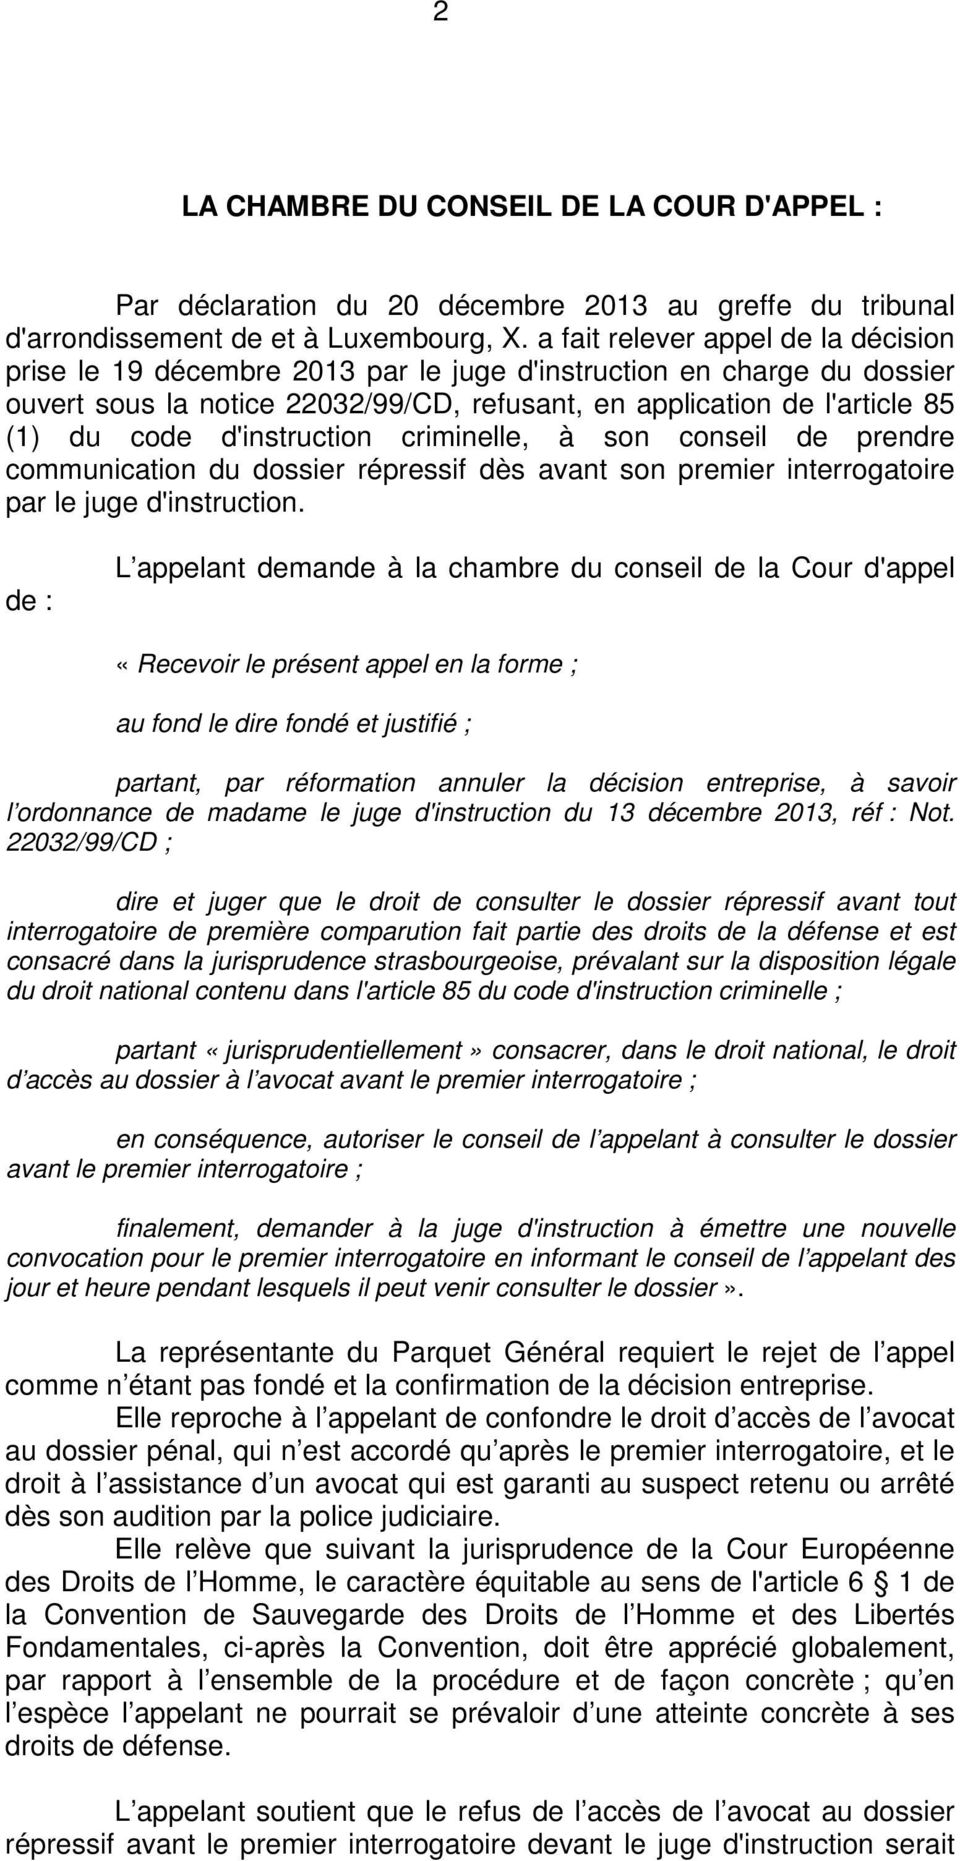 d'instruction criminelle, à son conseil de prendre communication du dossier répressif dès avant son premier interrogatoire par le juge d'instruction.